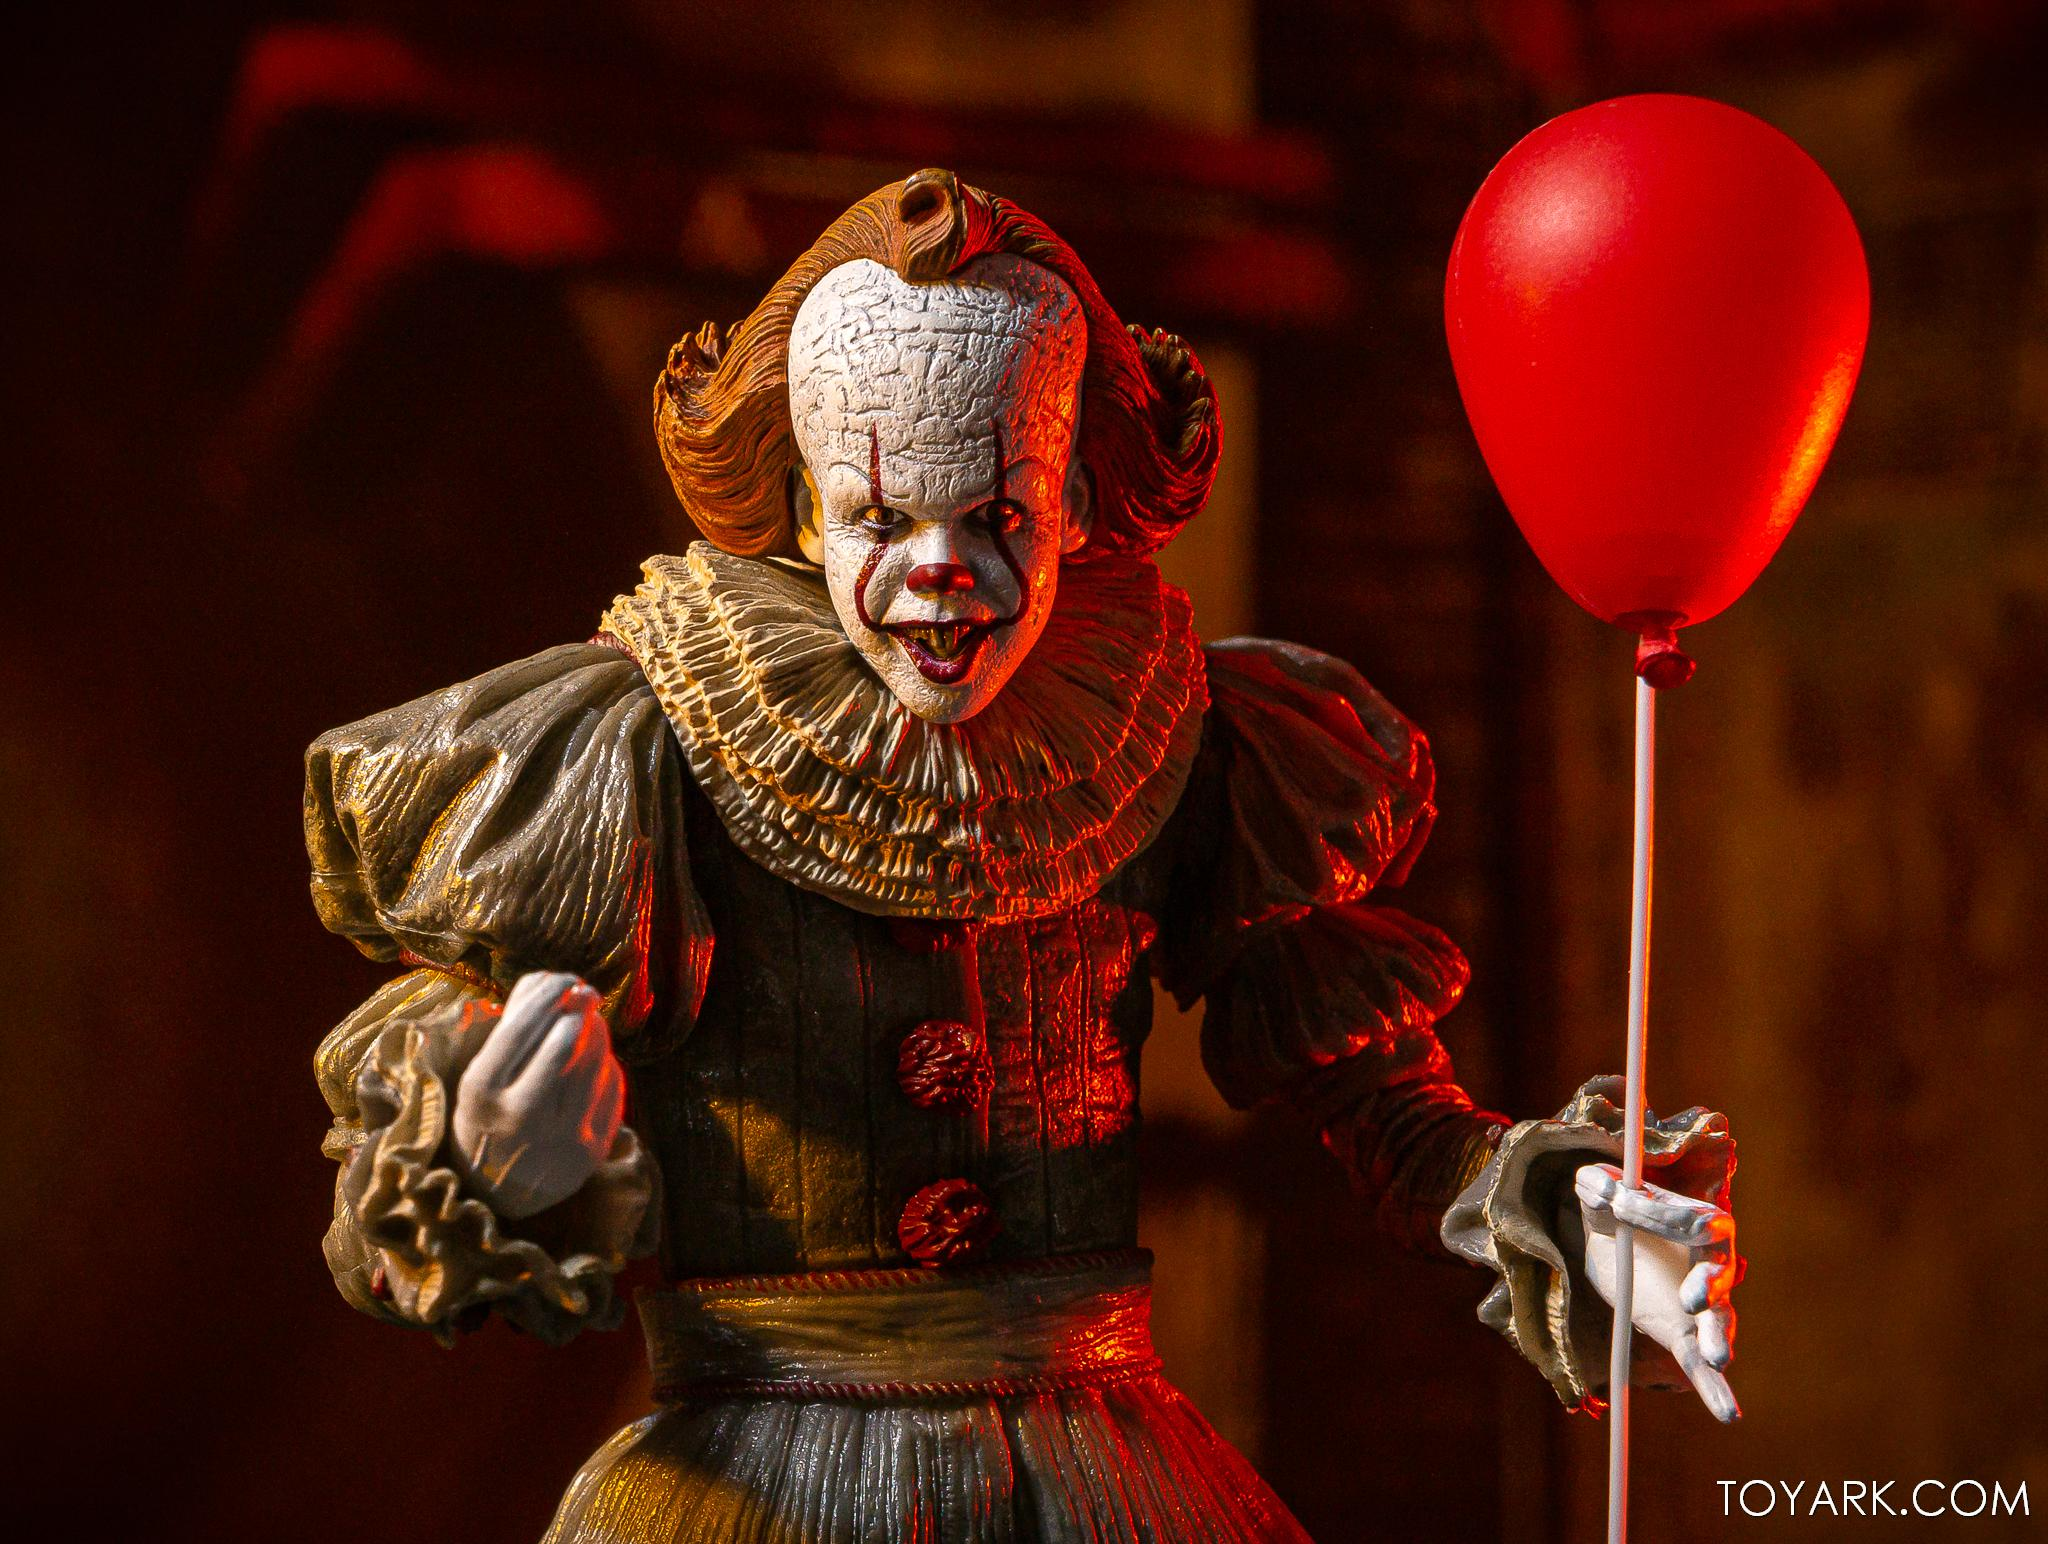 https://news.toyark.com/wp-content/uploads/sites/4/2020/06/NECA-IT-2-Ultimate-Pennywise-026.jpg